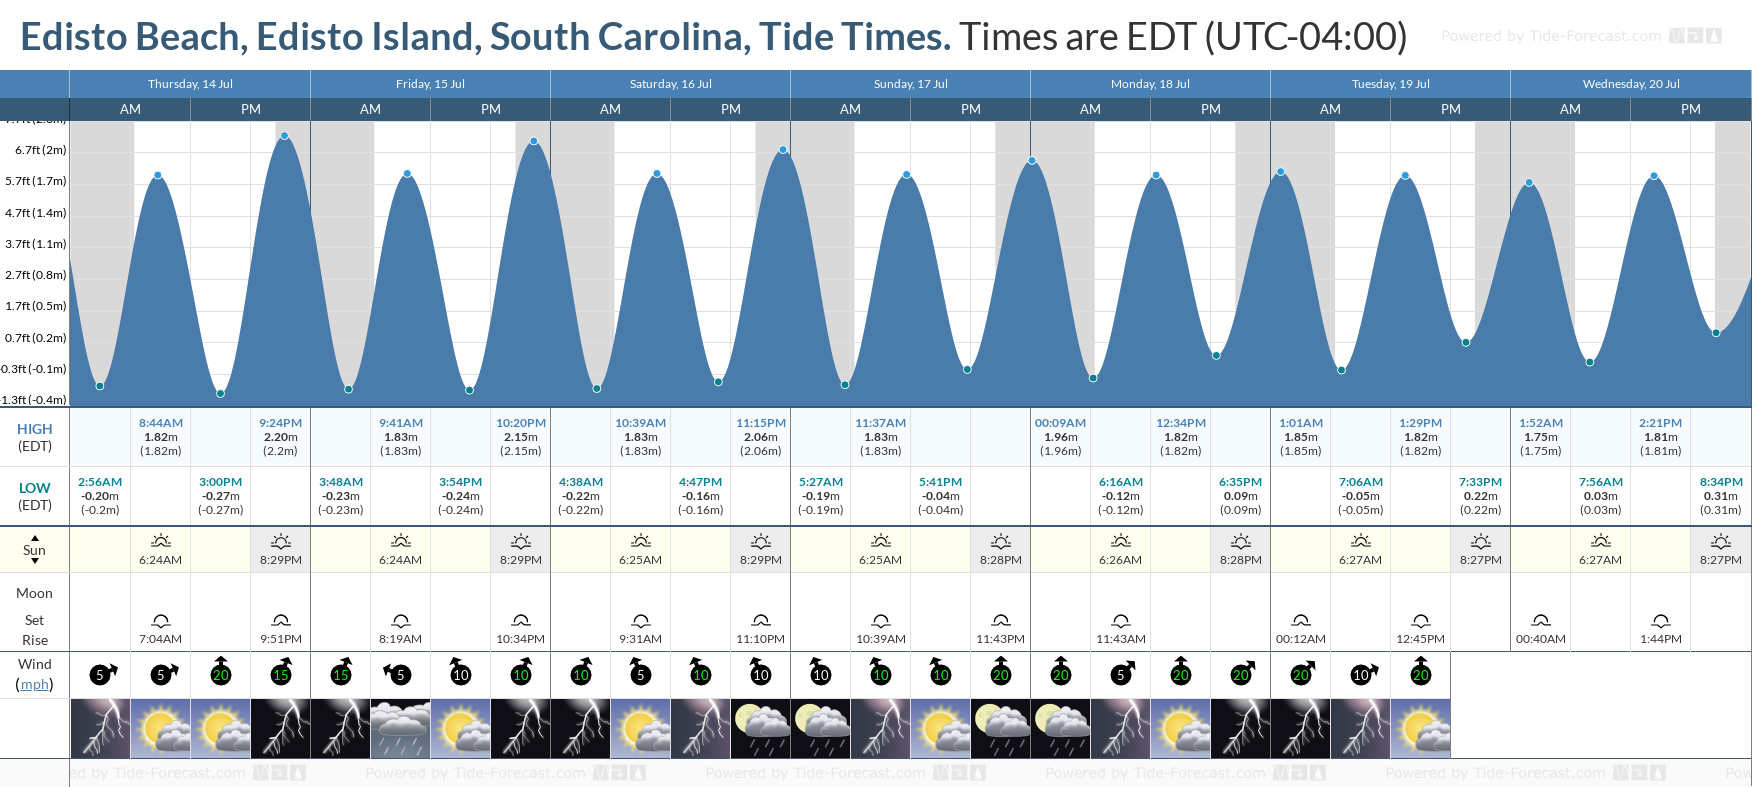 Edisto Beach, Edisto Island, South Carolina Tide Chart including high and low tide tide times for the next 7 days